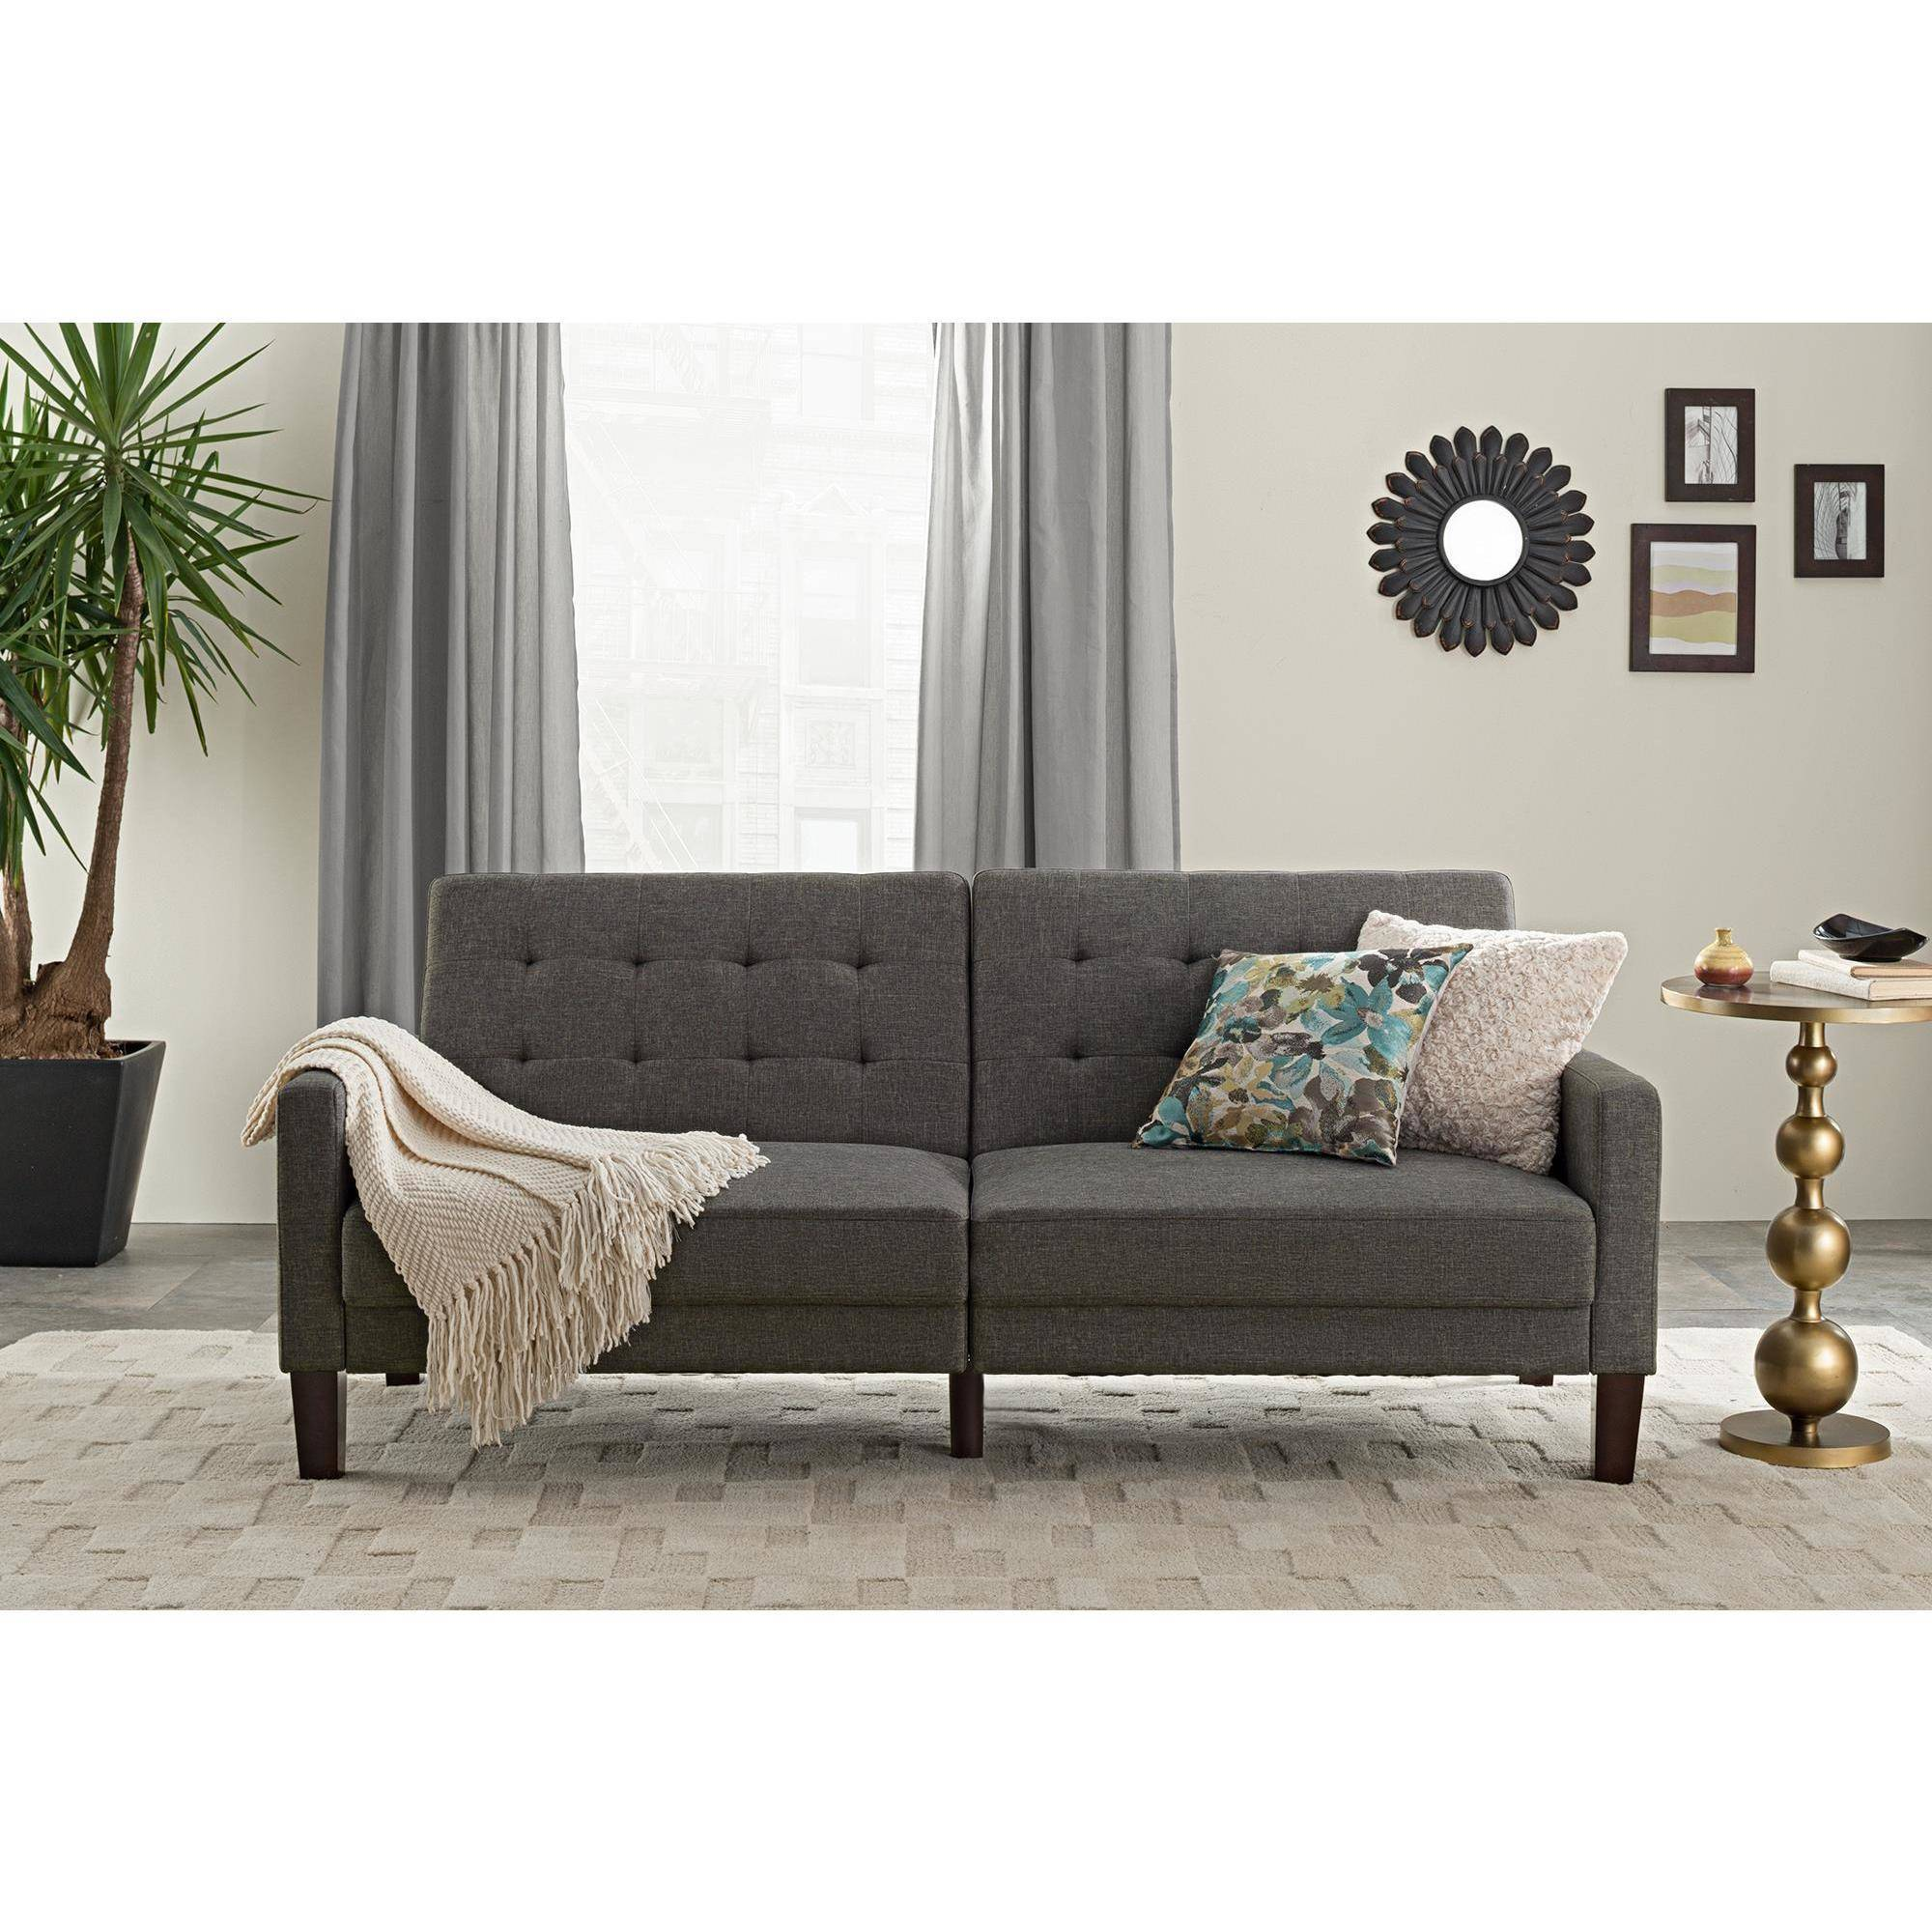 springs the ip walmart novogratz palm store colors multiple by com futon